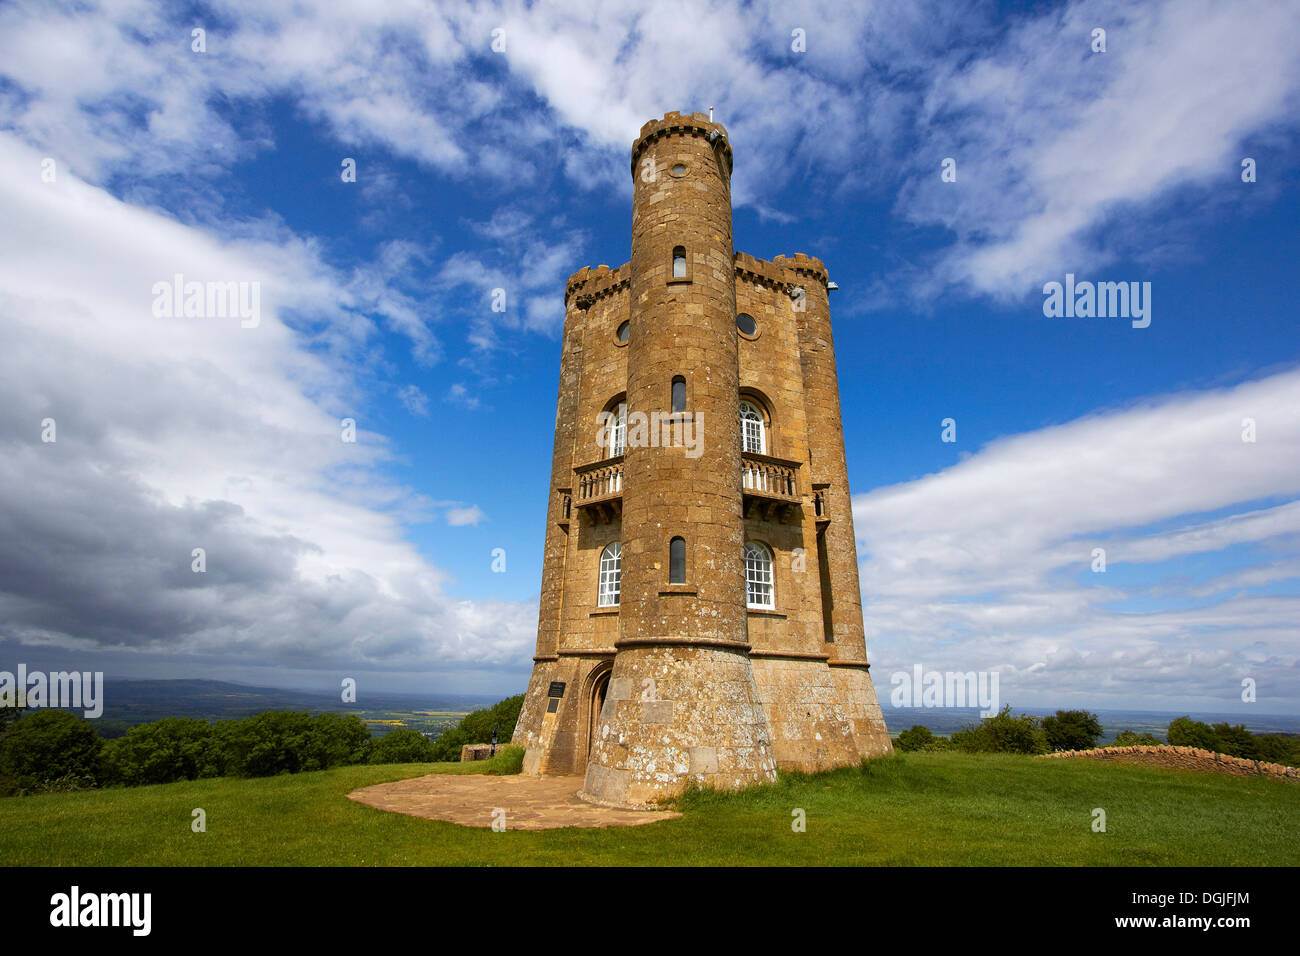 Broadway Tower. - Stock Image